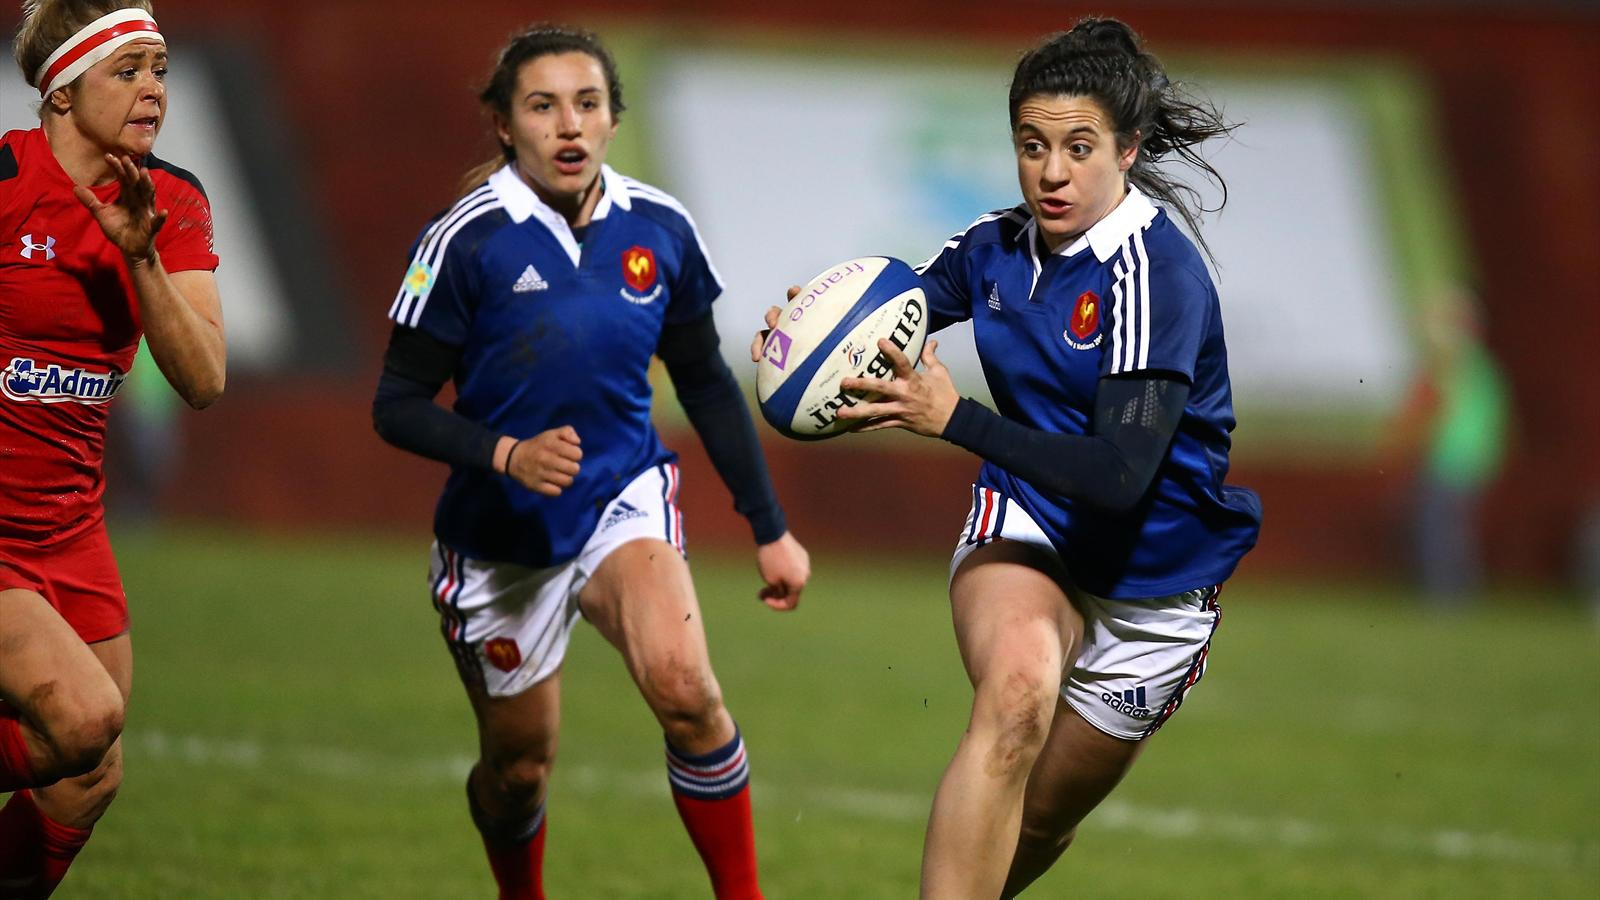 Tournoi des six nations les f minines elles s duisent 6 nations 2015 rugby rugbyrama - Coupe des 6 nations rugby ...